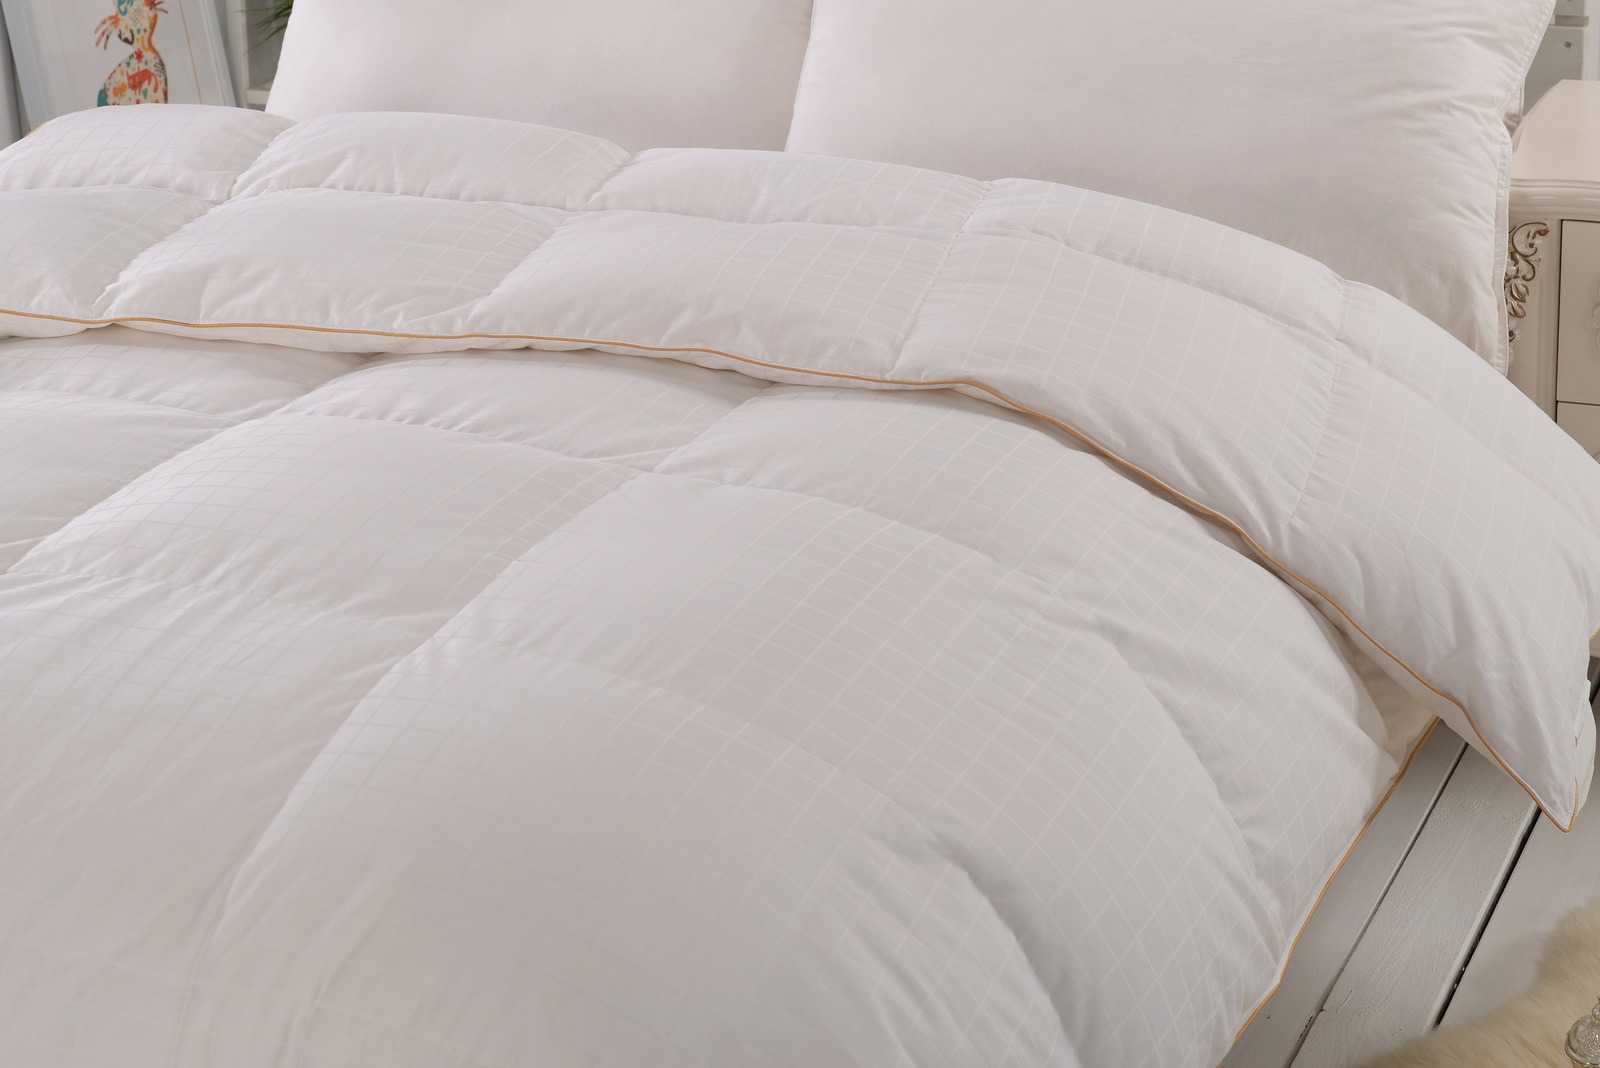 70% White Duck Down Duvet, 300t High Count Dobby Cotton Fabric